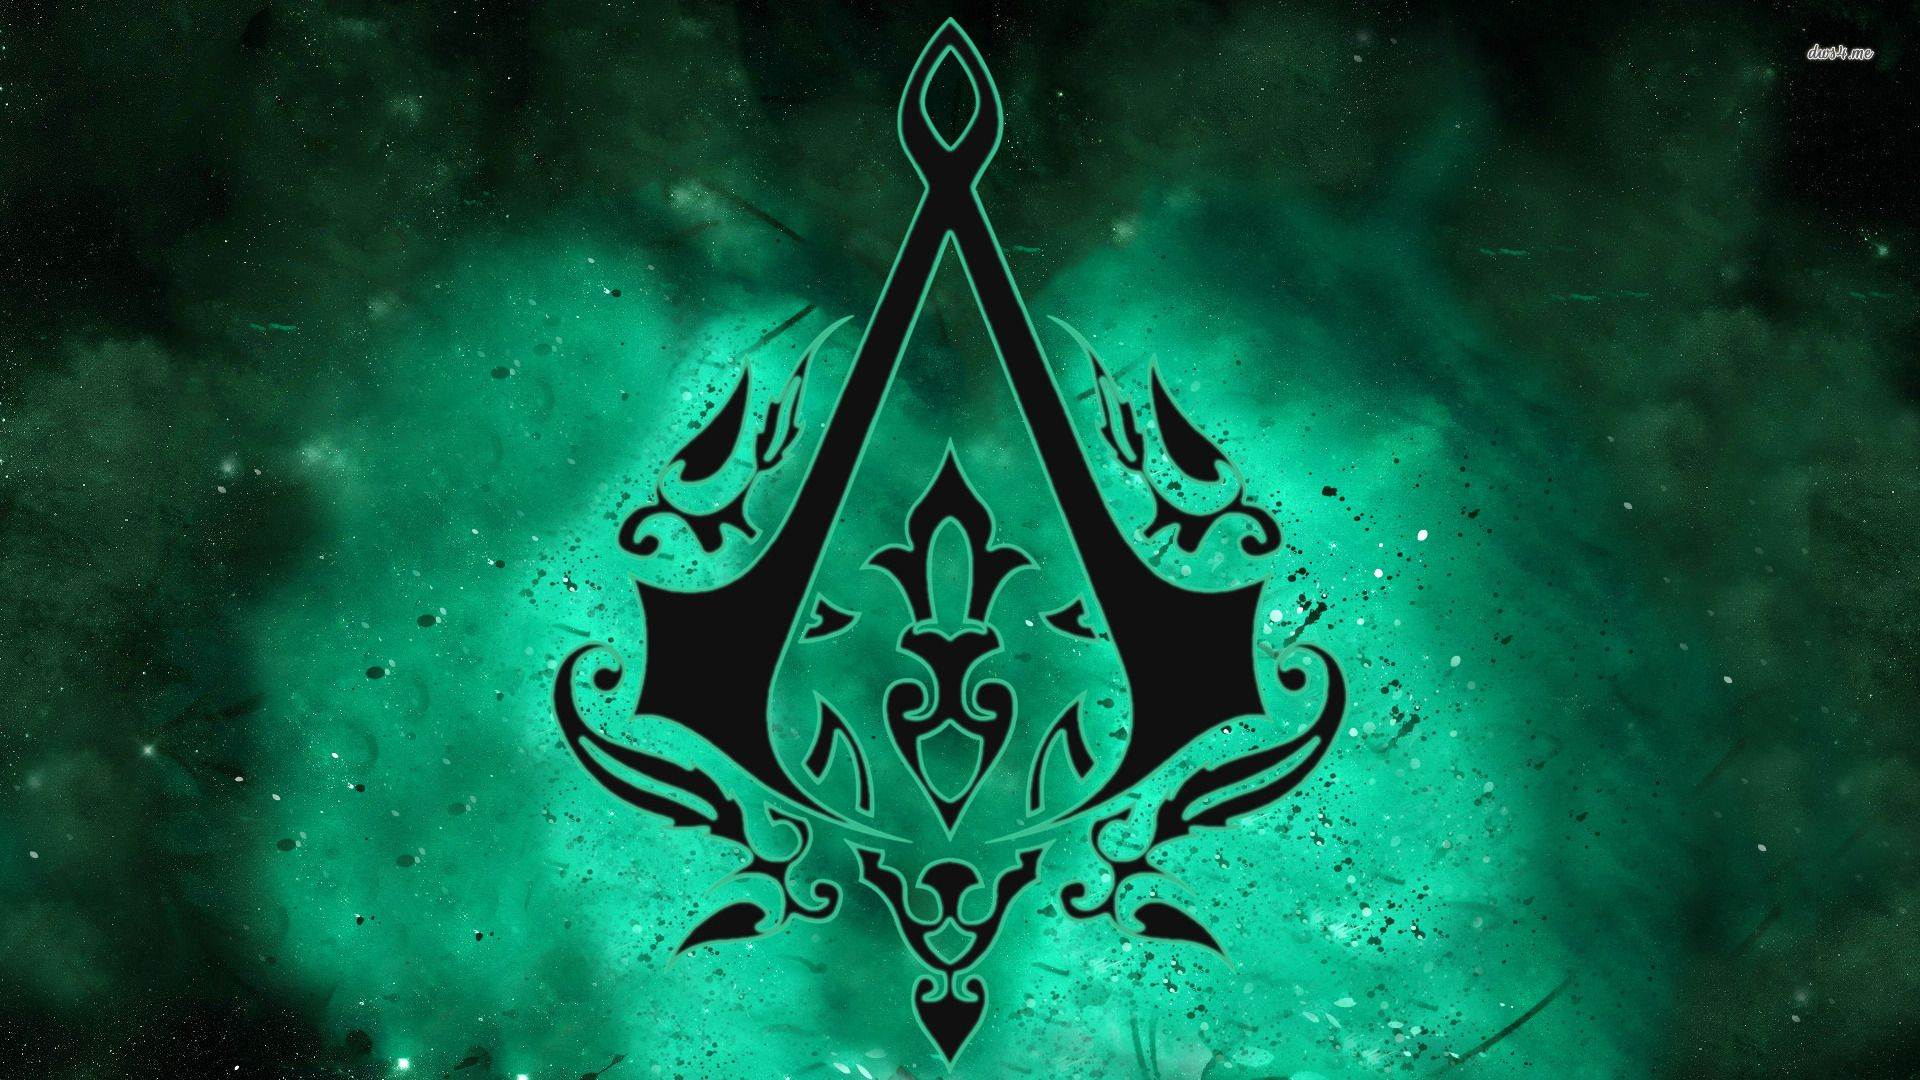 Wallpapers For > Assassins Creed Logo Wallpaper 1920x1080